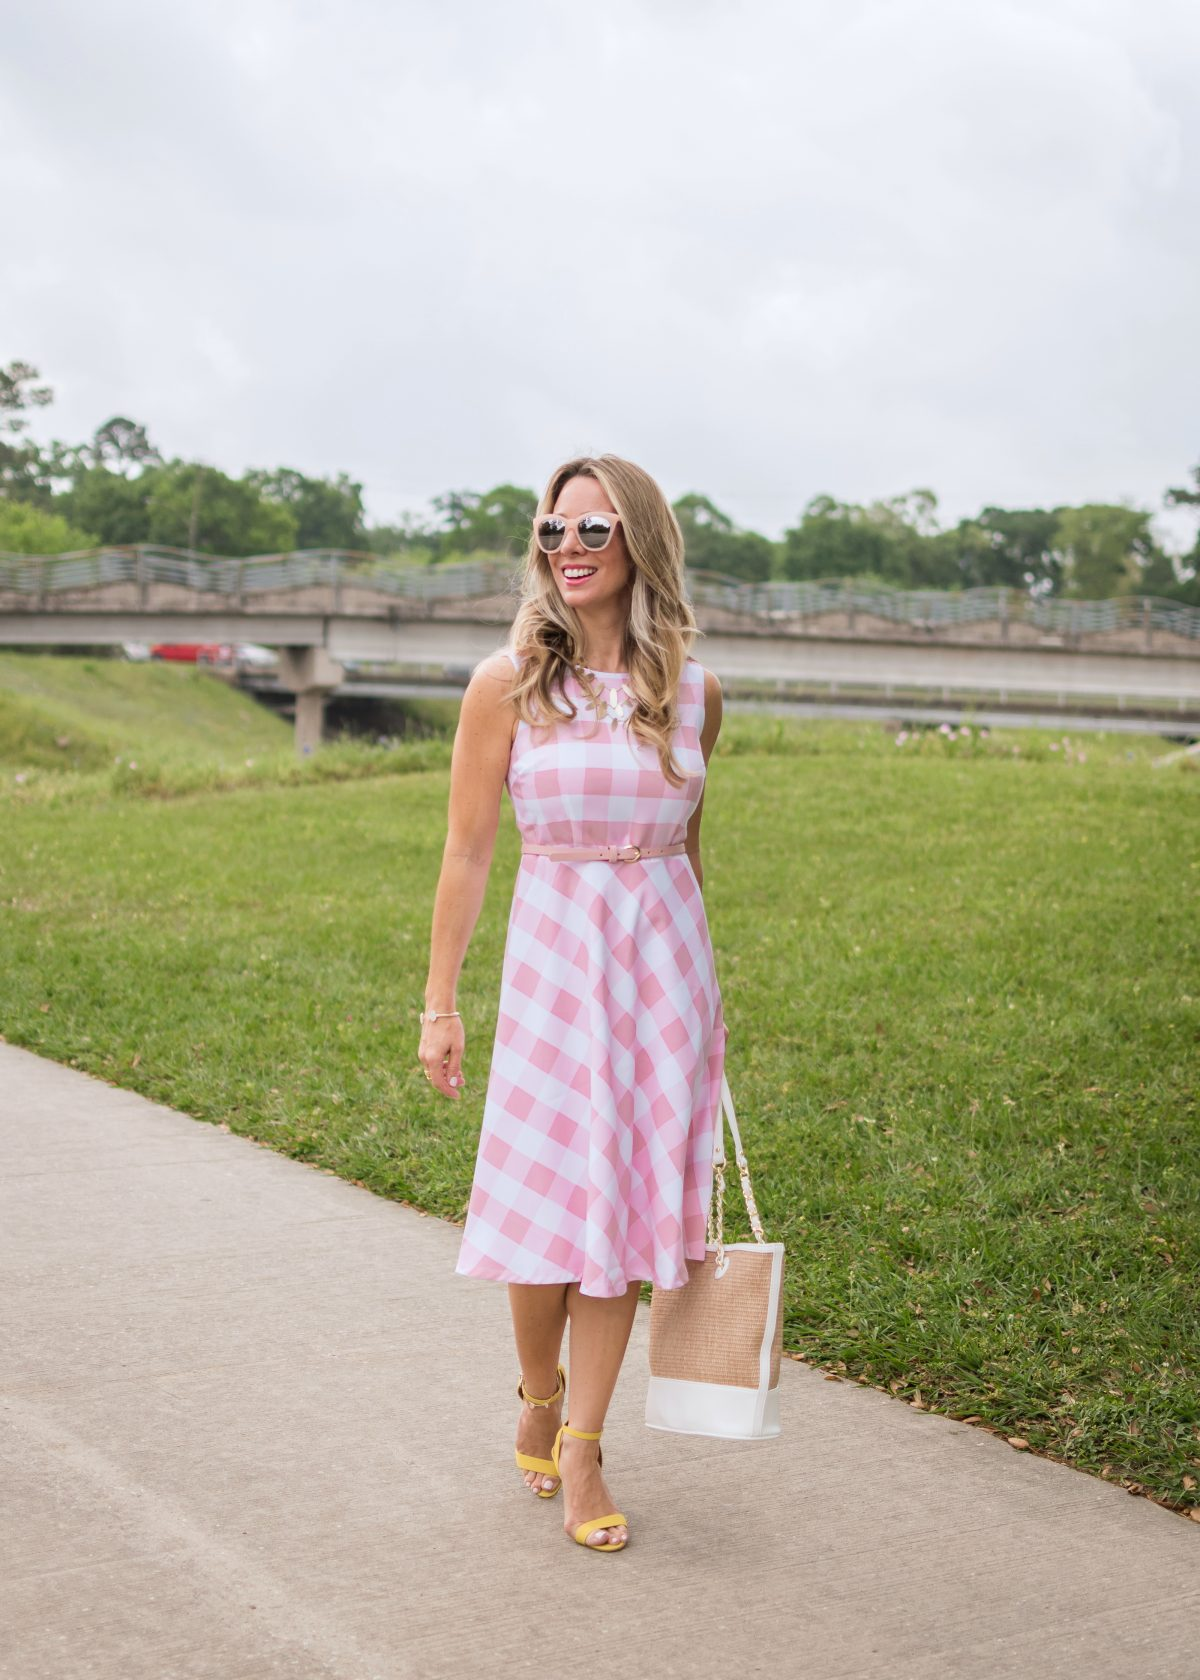 Spring fashion - pink and white gingham dress 4